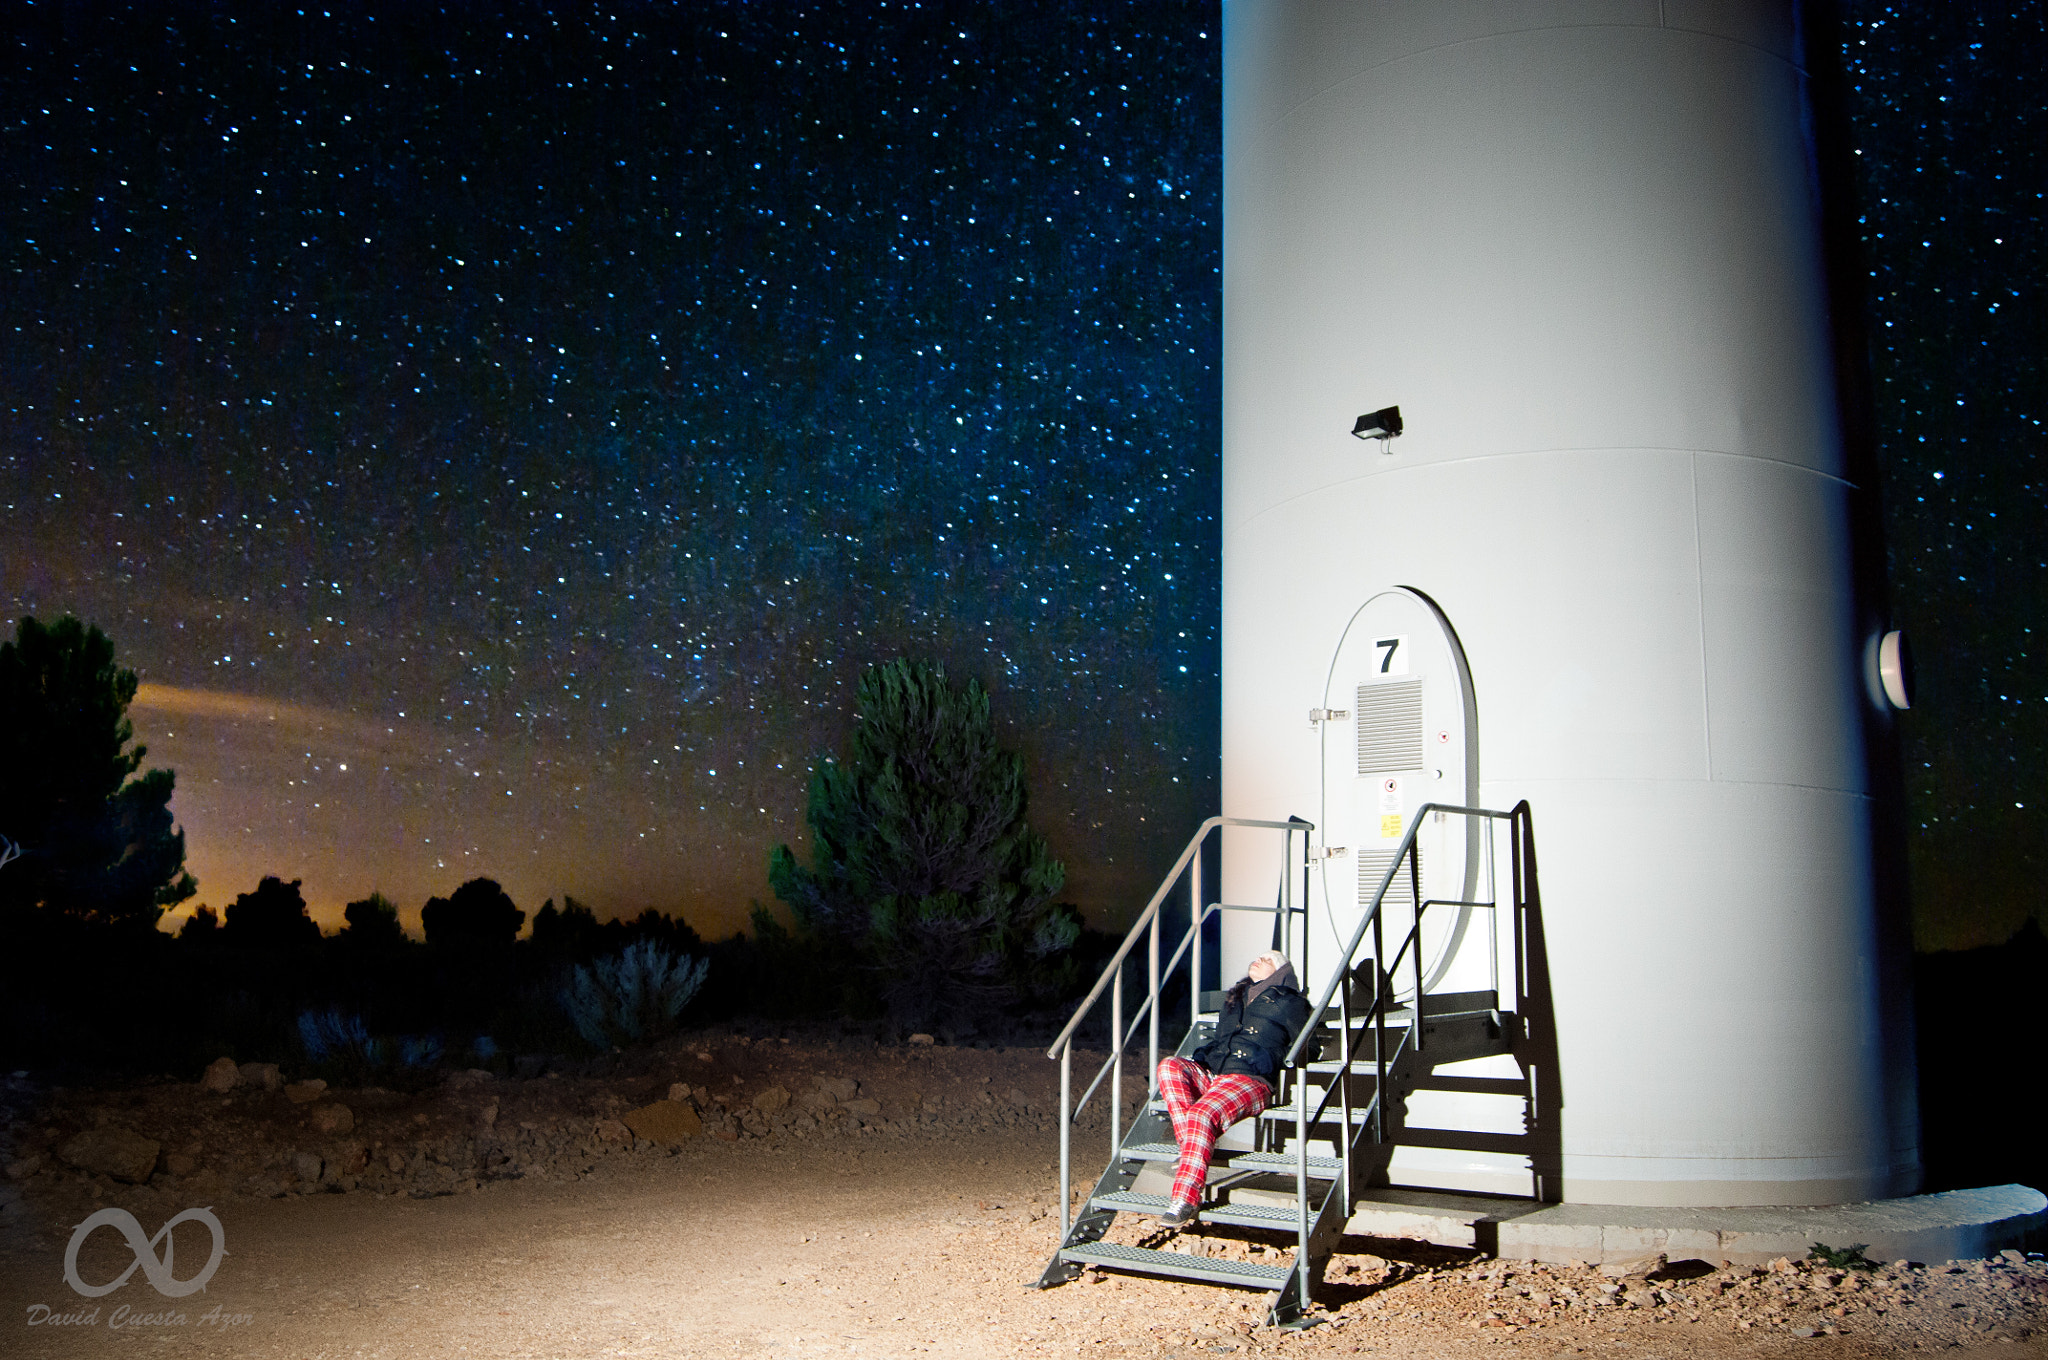 Photograph Waiting for the 7th lift to the stars. by David Cuesta Azor on 500px